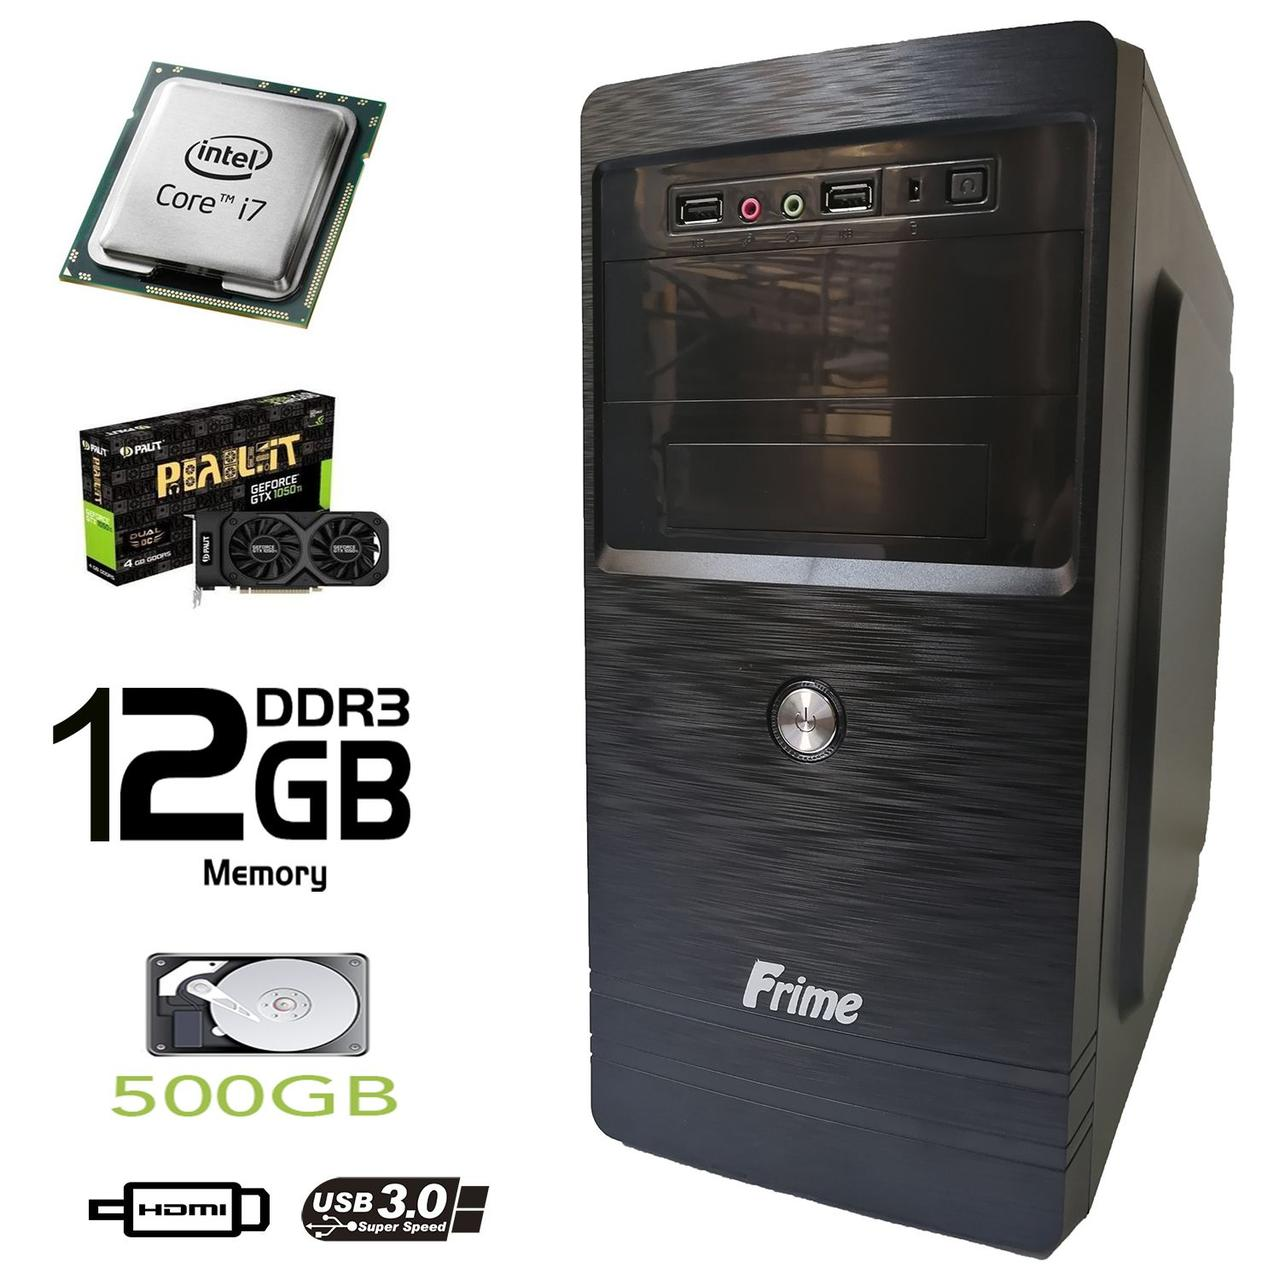 Frime Tower / Intel Core i7-3770 (4(8) ядер по 3.4-3.9GHz) / 12 GB DDR3 / 500 GB HDD / Palit GeForce GTX 1050 Ti 4 GB GDDR5 (HDMI, DVI, DP) / FSP 400W